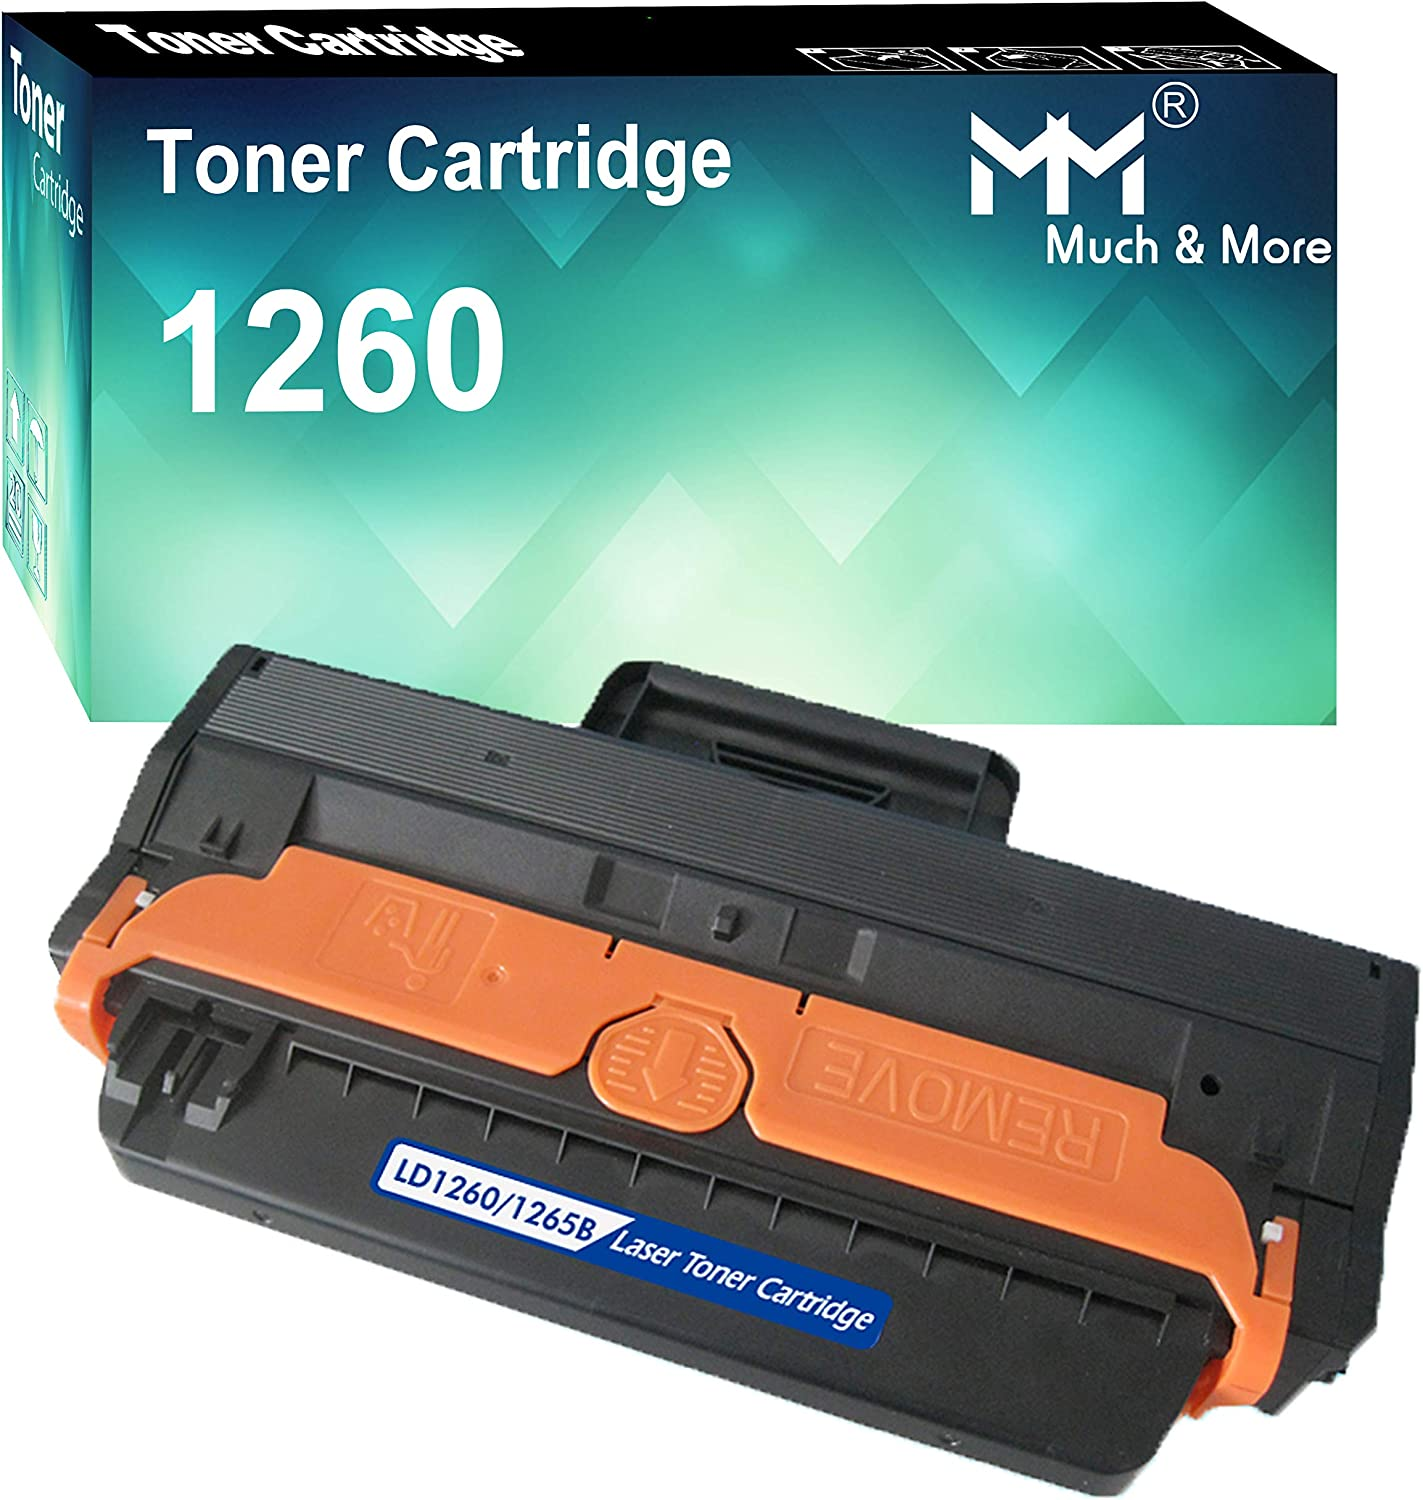 (1-Pack) Compatible Dell 1260 Dell 331-7328 RWXNT Toner Cartridge Used for Dell B1260dn B1260 B1265dn B1265dnf B1265dfw Series Printers, Sold by MuchMore